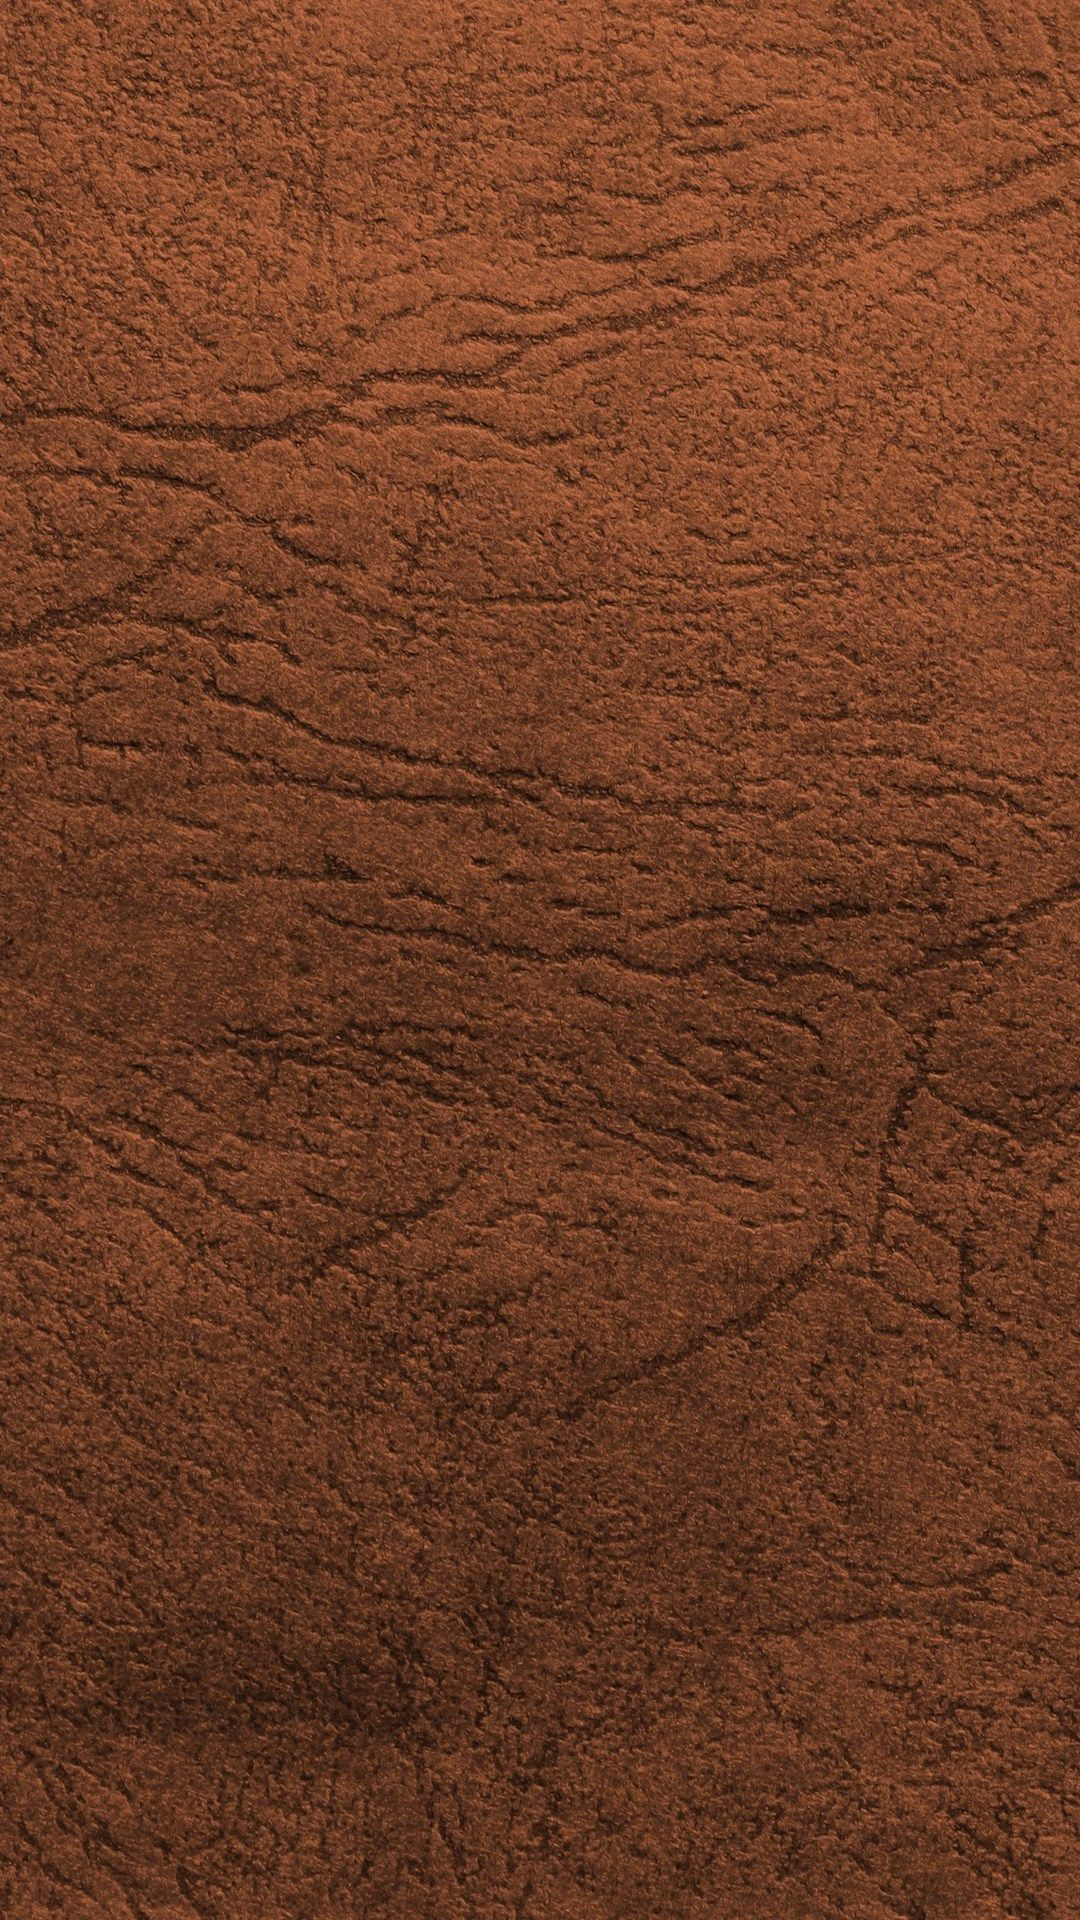 Classy Brown Leather Material Texture Backgrounds For